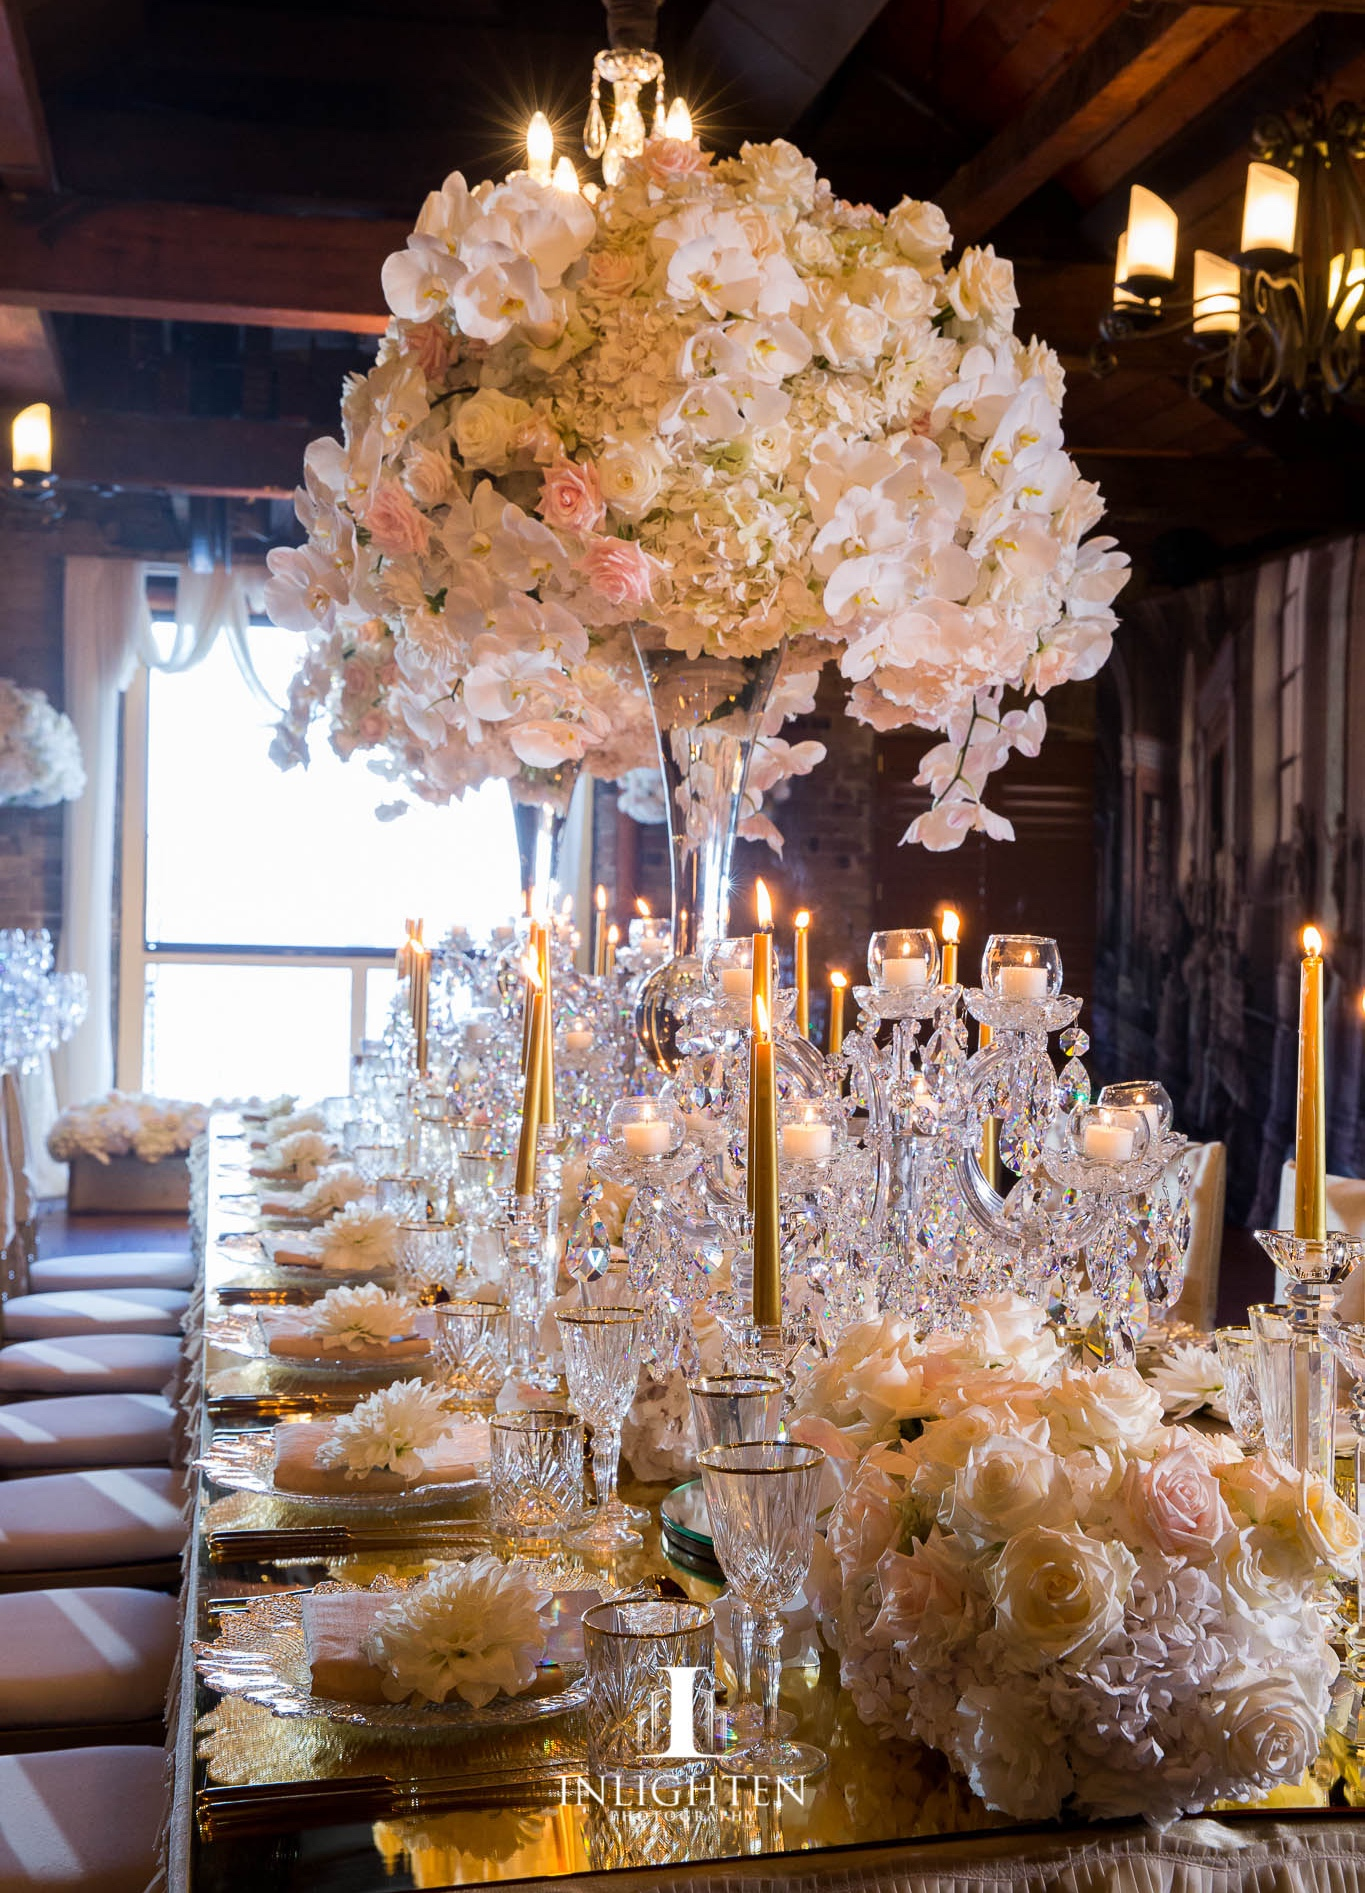 Crystal glasswear_Centrepiece_Crystal vase_crystal_cut_candlesticks_gold candles.jpg